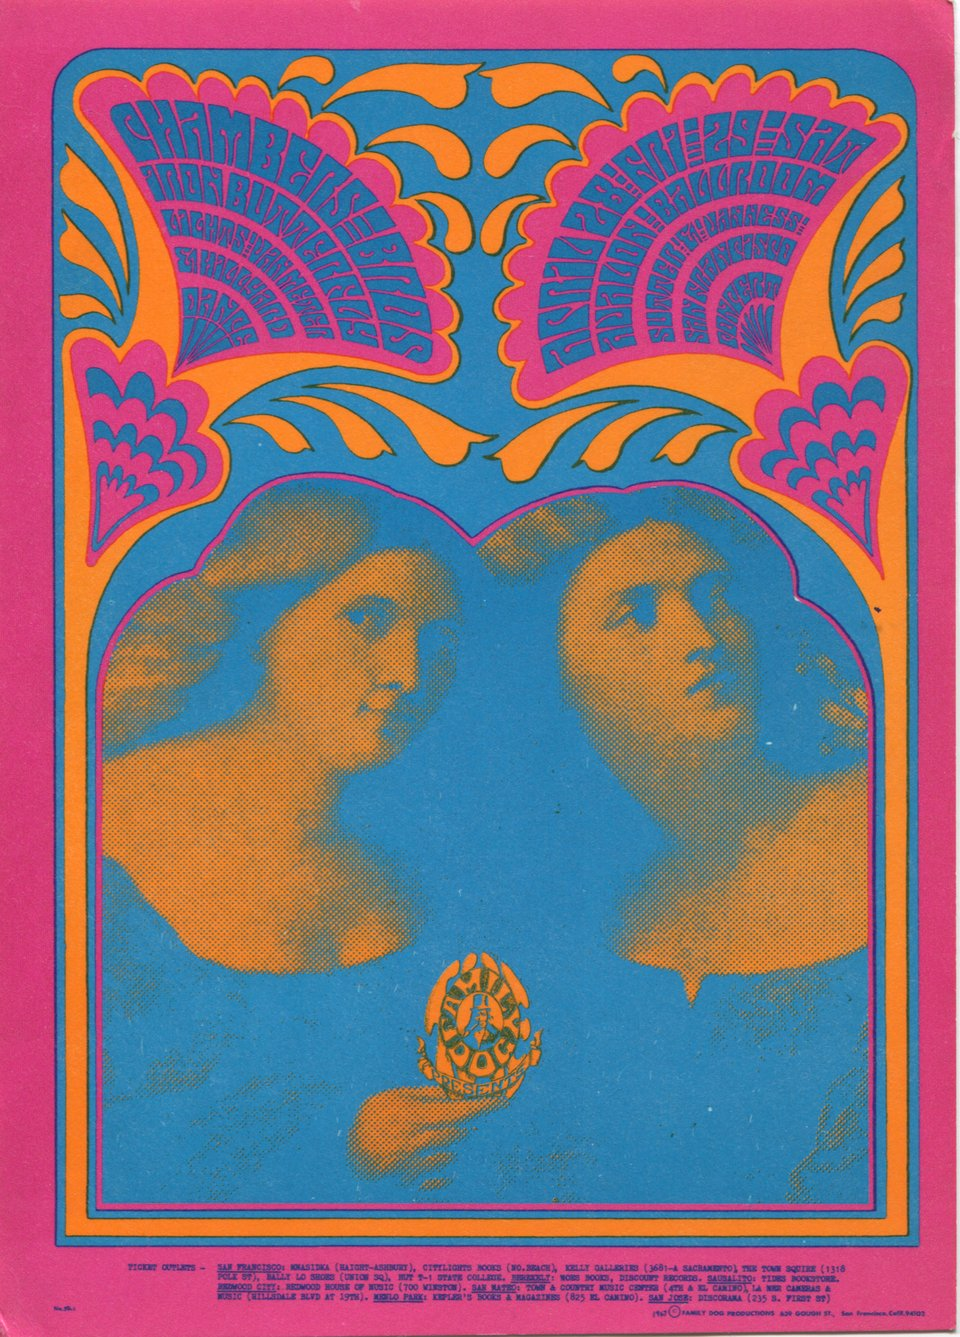 Iron Butterfly, Chambers Brothers – Vintage poster – Victor MOSCOSO – 1967